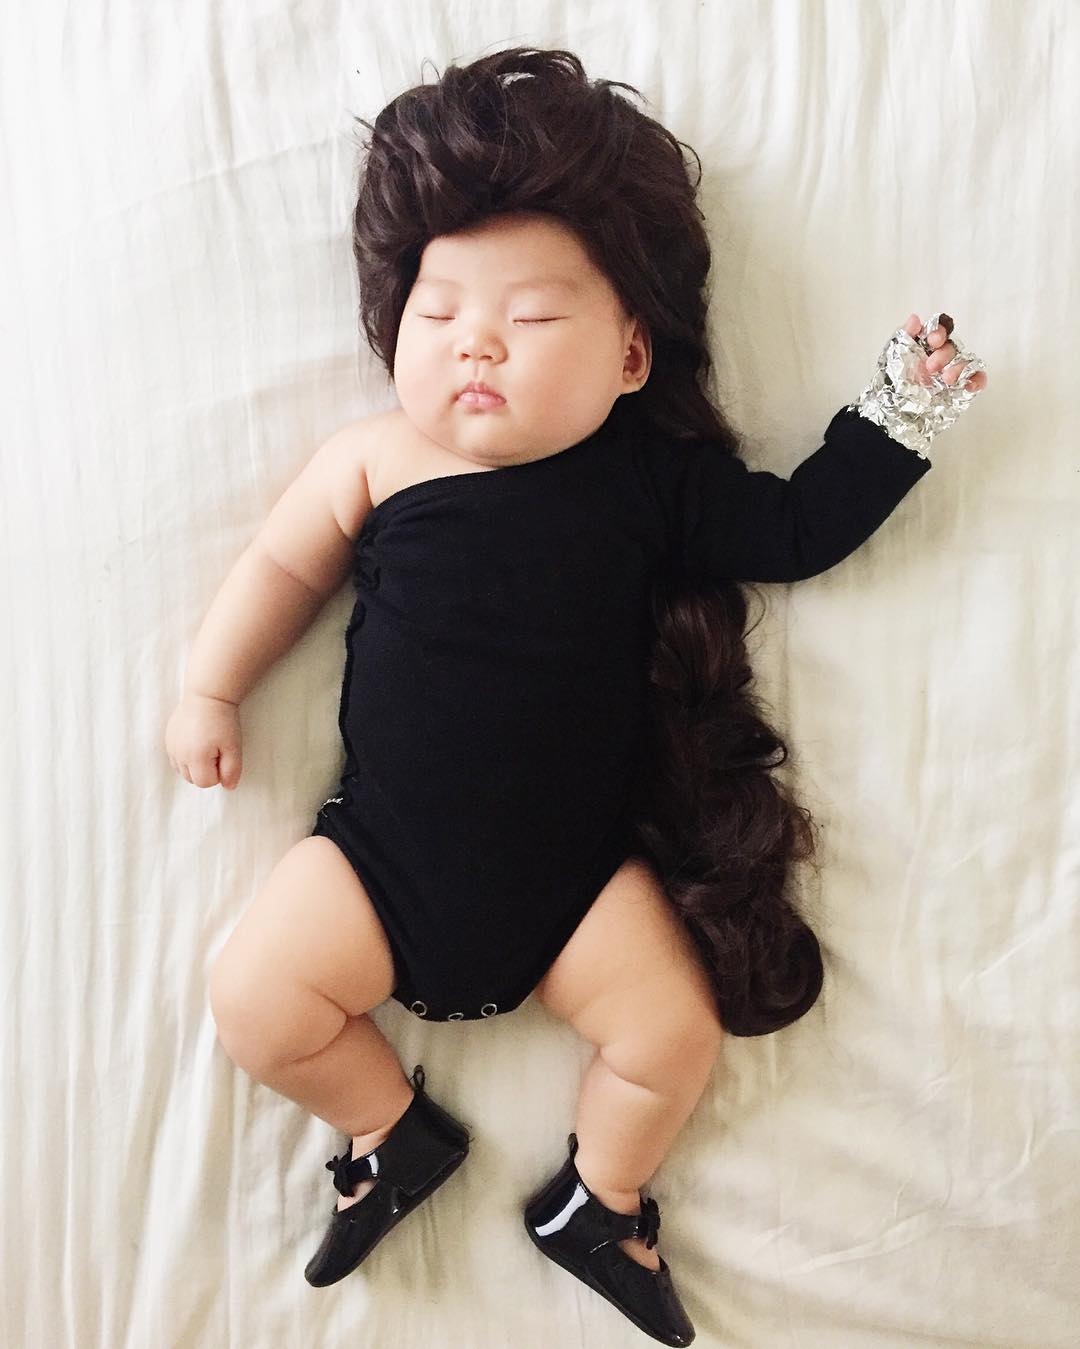 sleeping baby dress up instagram. Black Bedroom Furniture Sets. Home Design Ideas